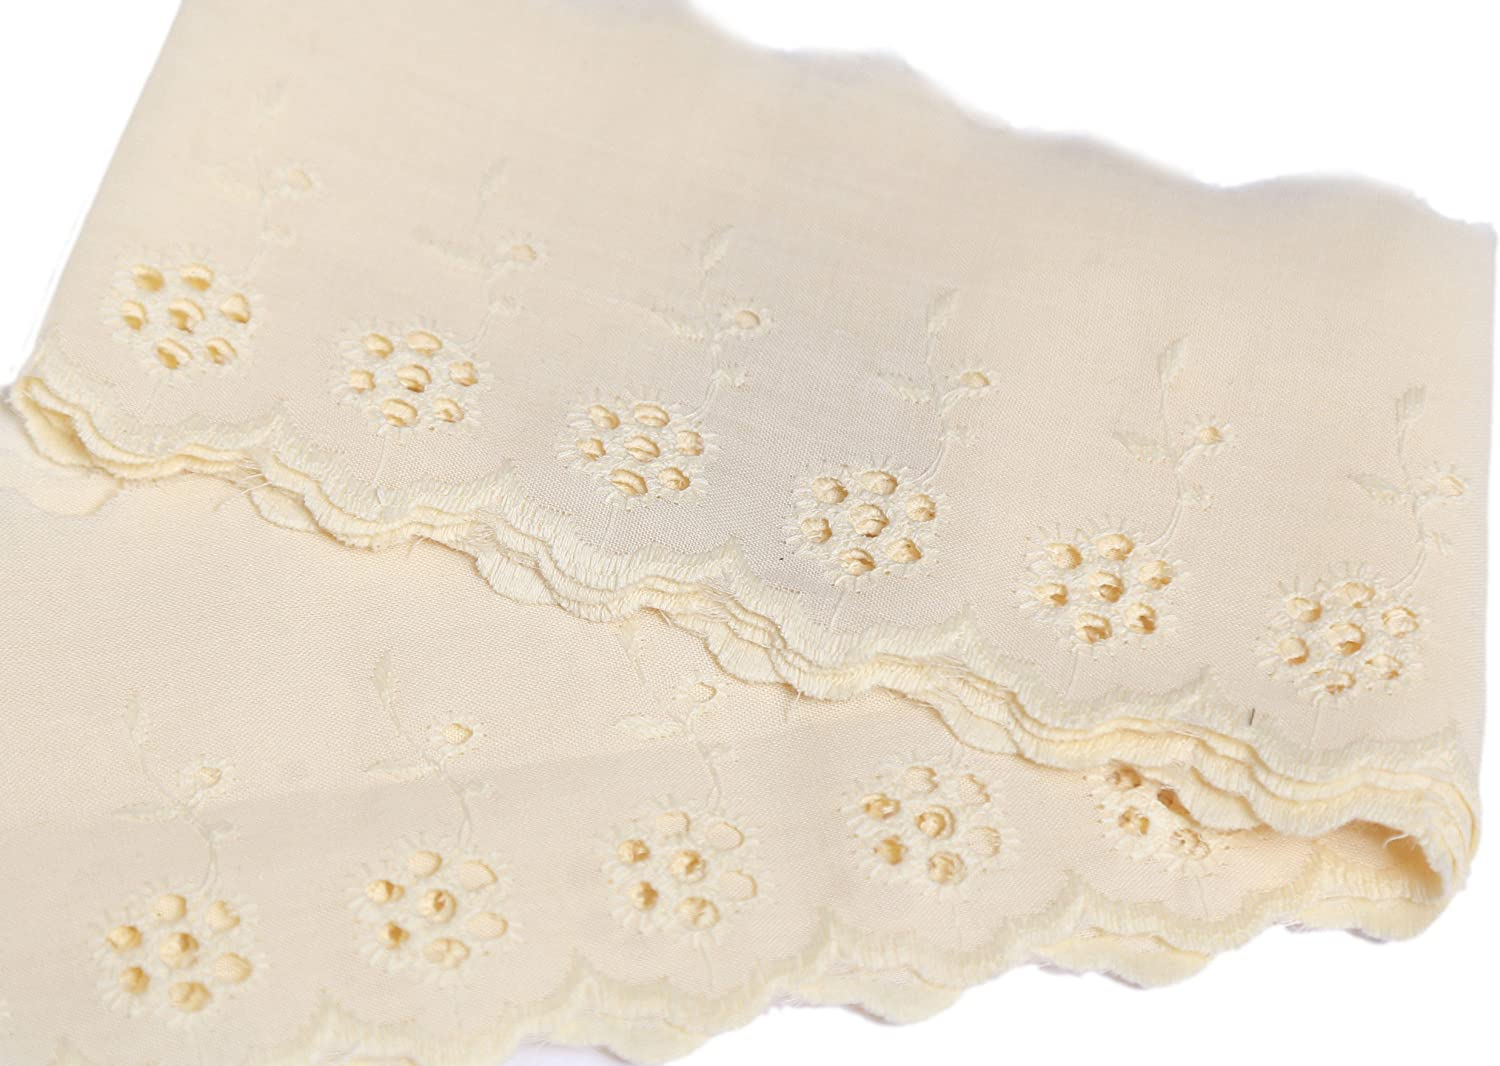 1-Meter Cream Beautiful Cotton Chicken Embroidery Broderie Anglaise Lace Ribbon Trimming Bridal Wedding Scalloped Edge 85mm Wide M51729